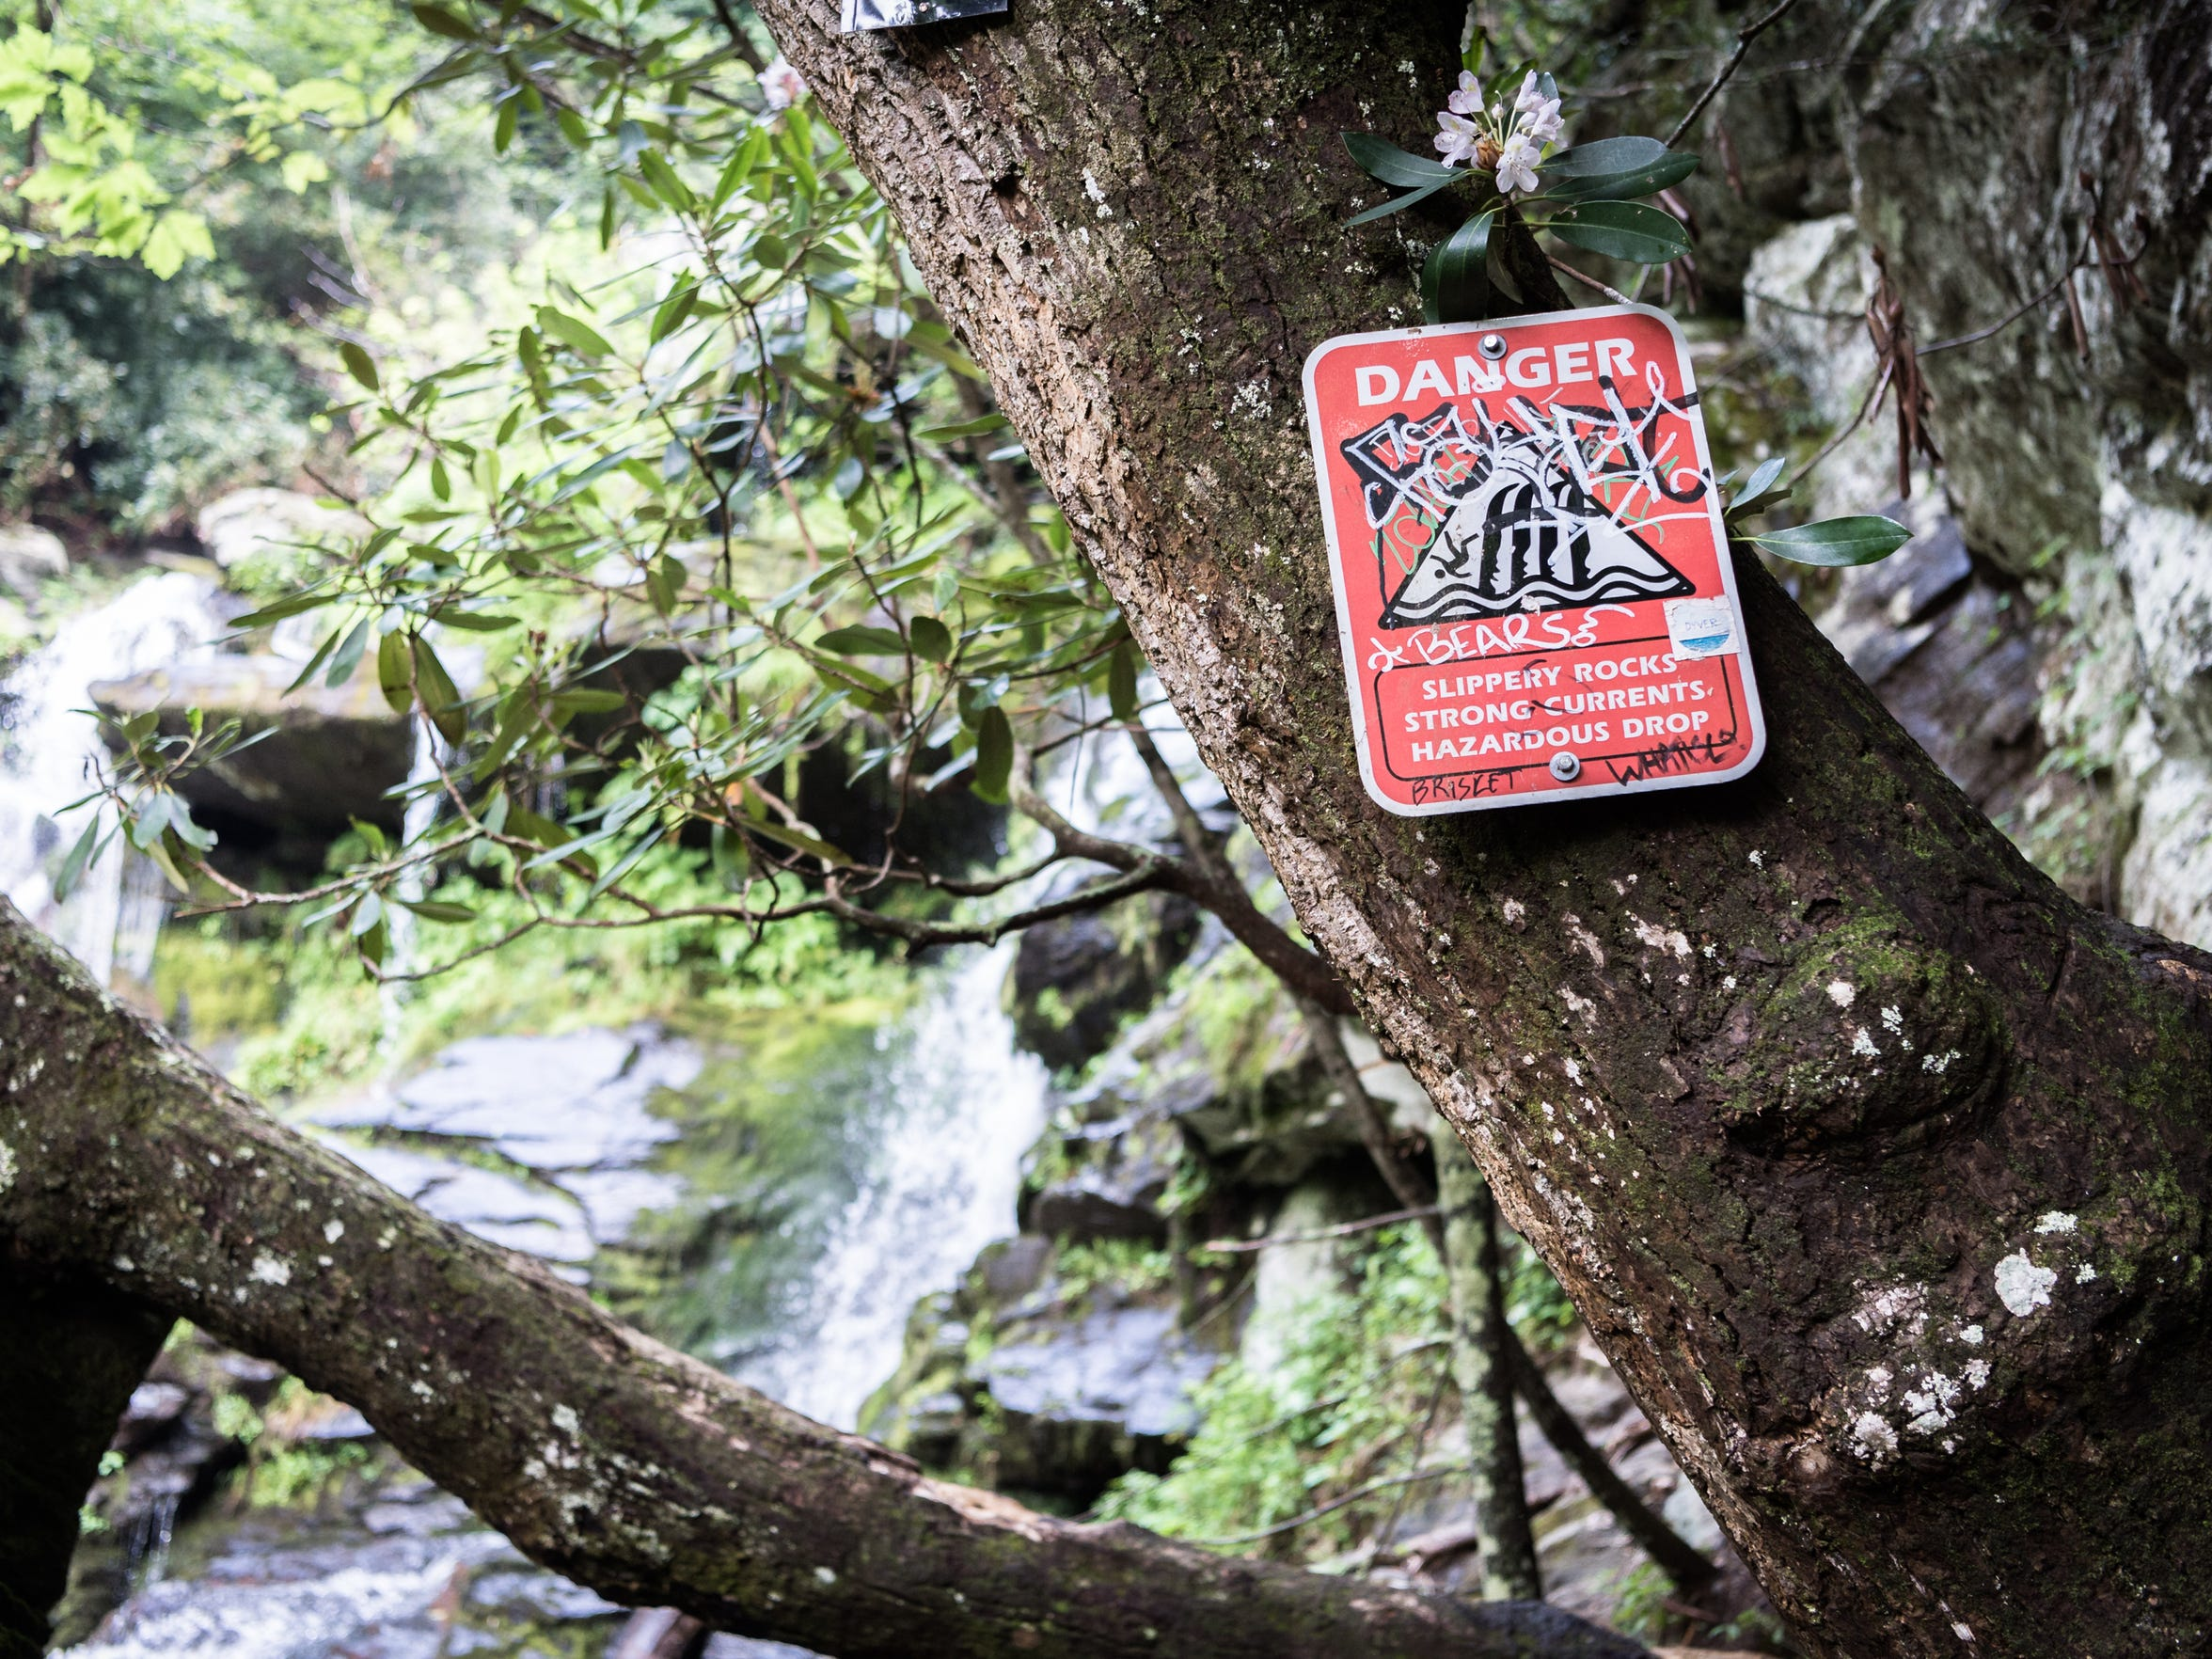 Signage warning visitors to Catabwa Falls in the Pisgah National Forest in Old Fort of the hazards of climbing around the waterfalls.